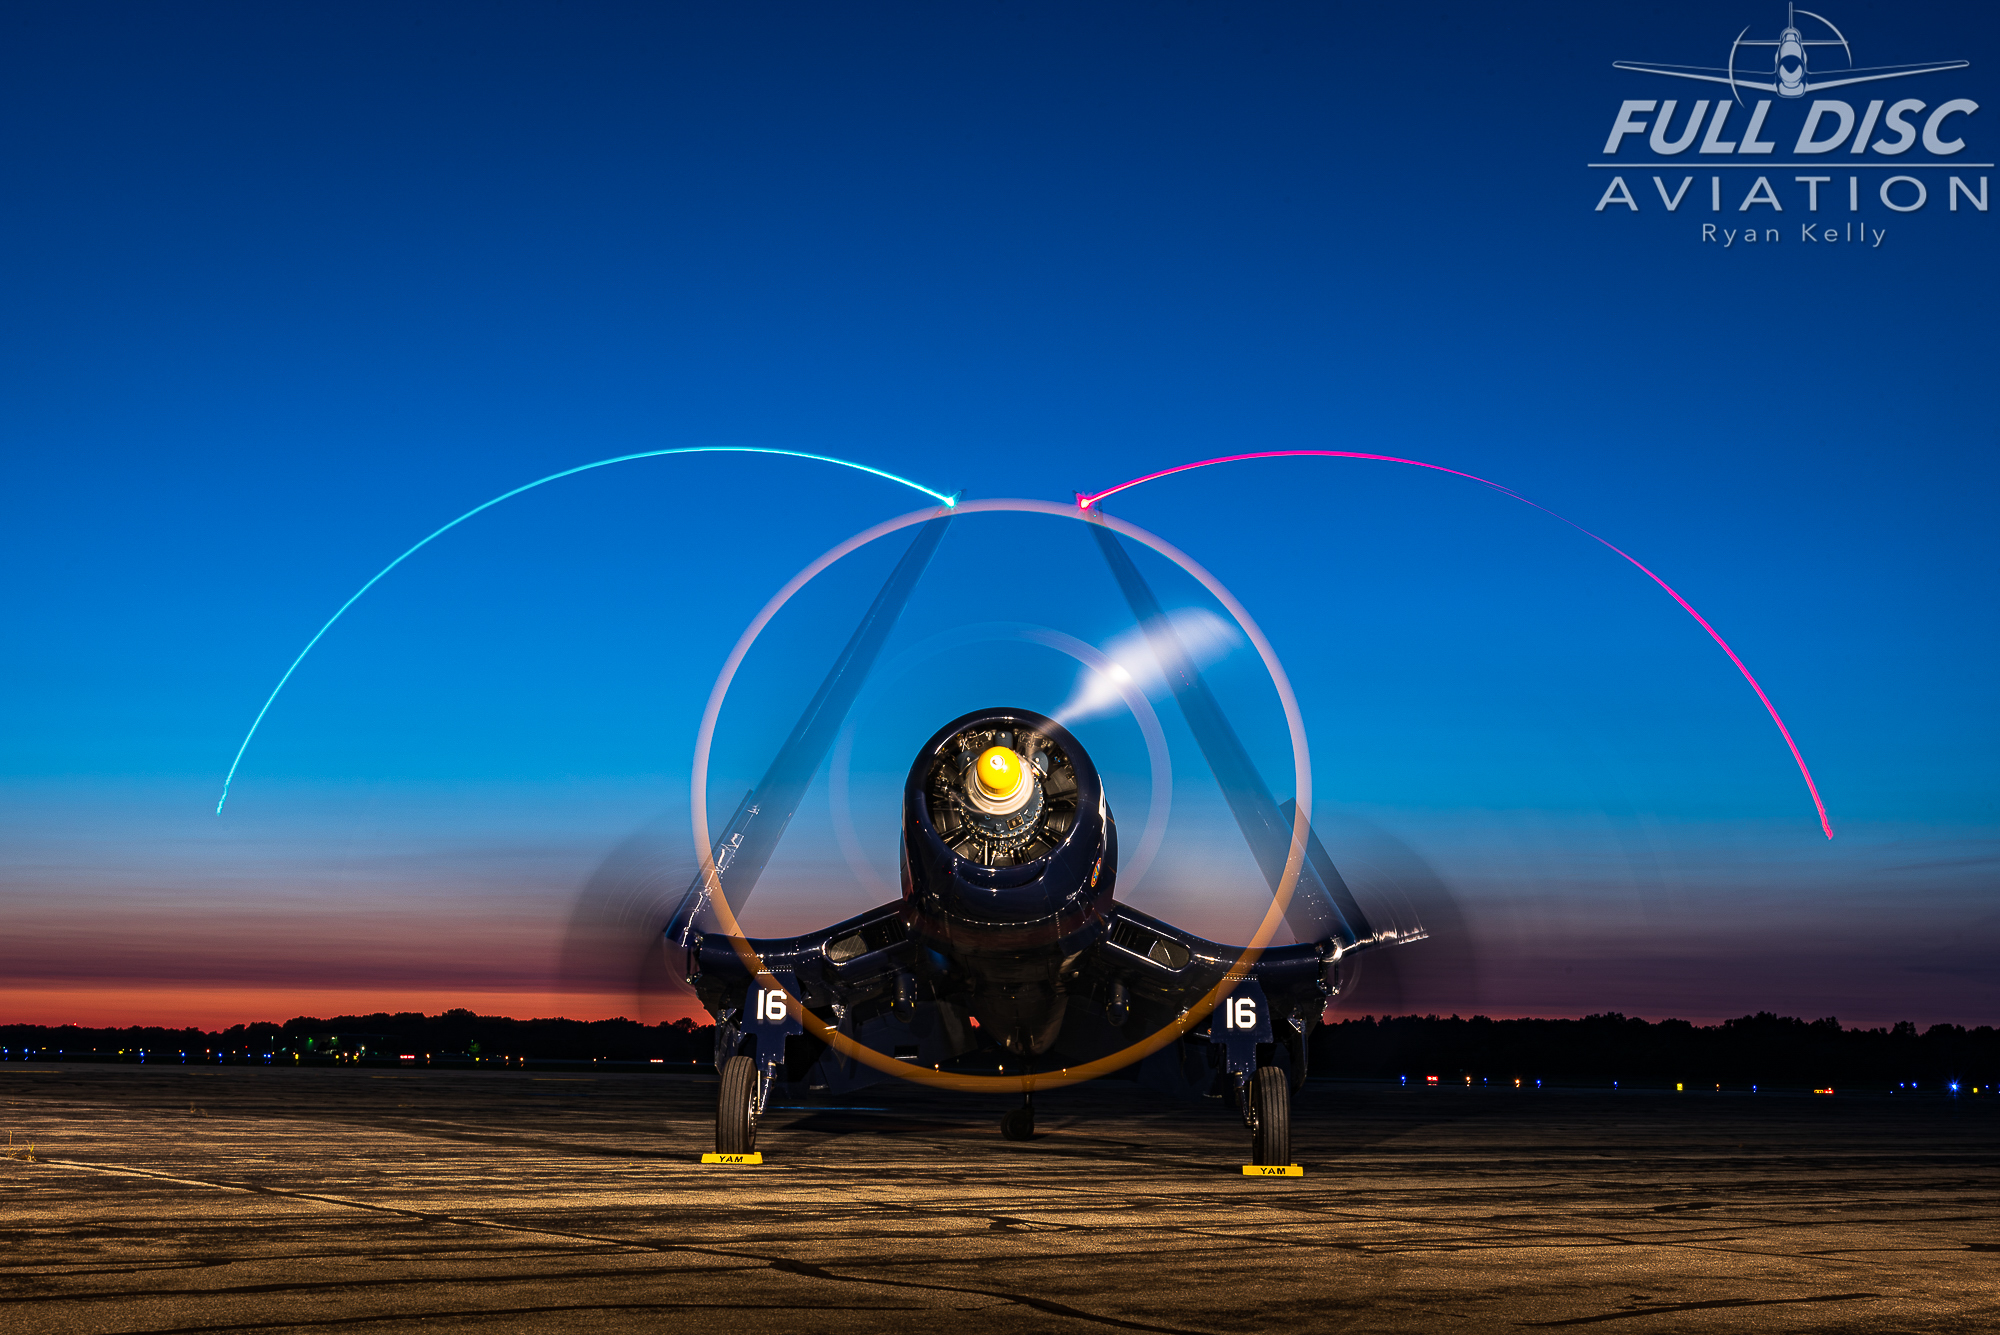 ClassOf45_FullDiscAviation_RyanKelly_August 01, 2019_24.jpg